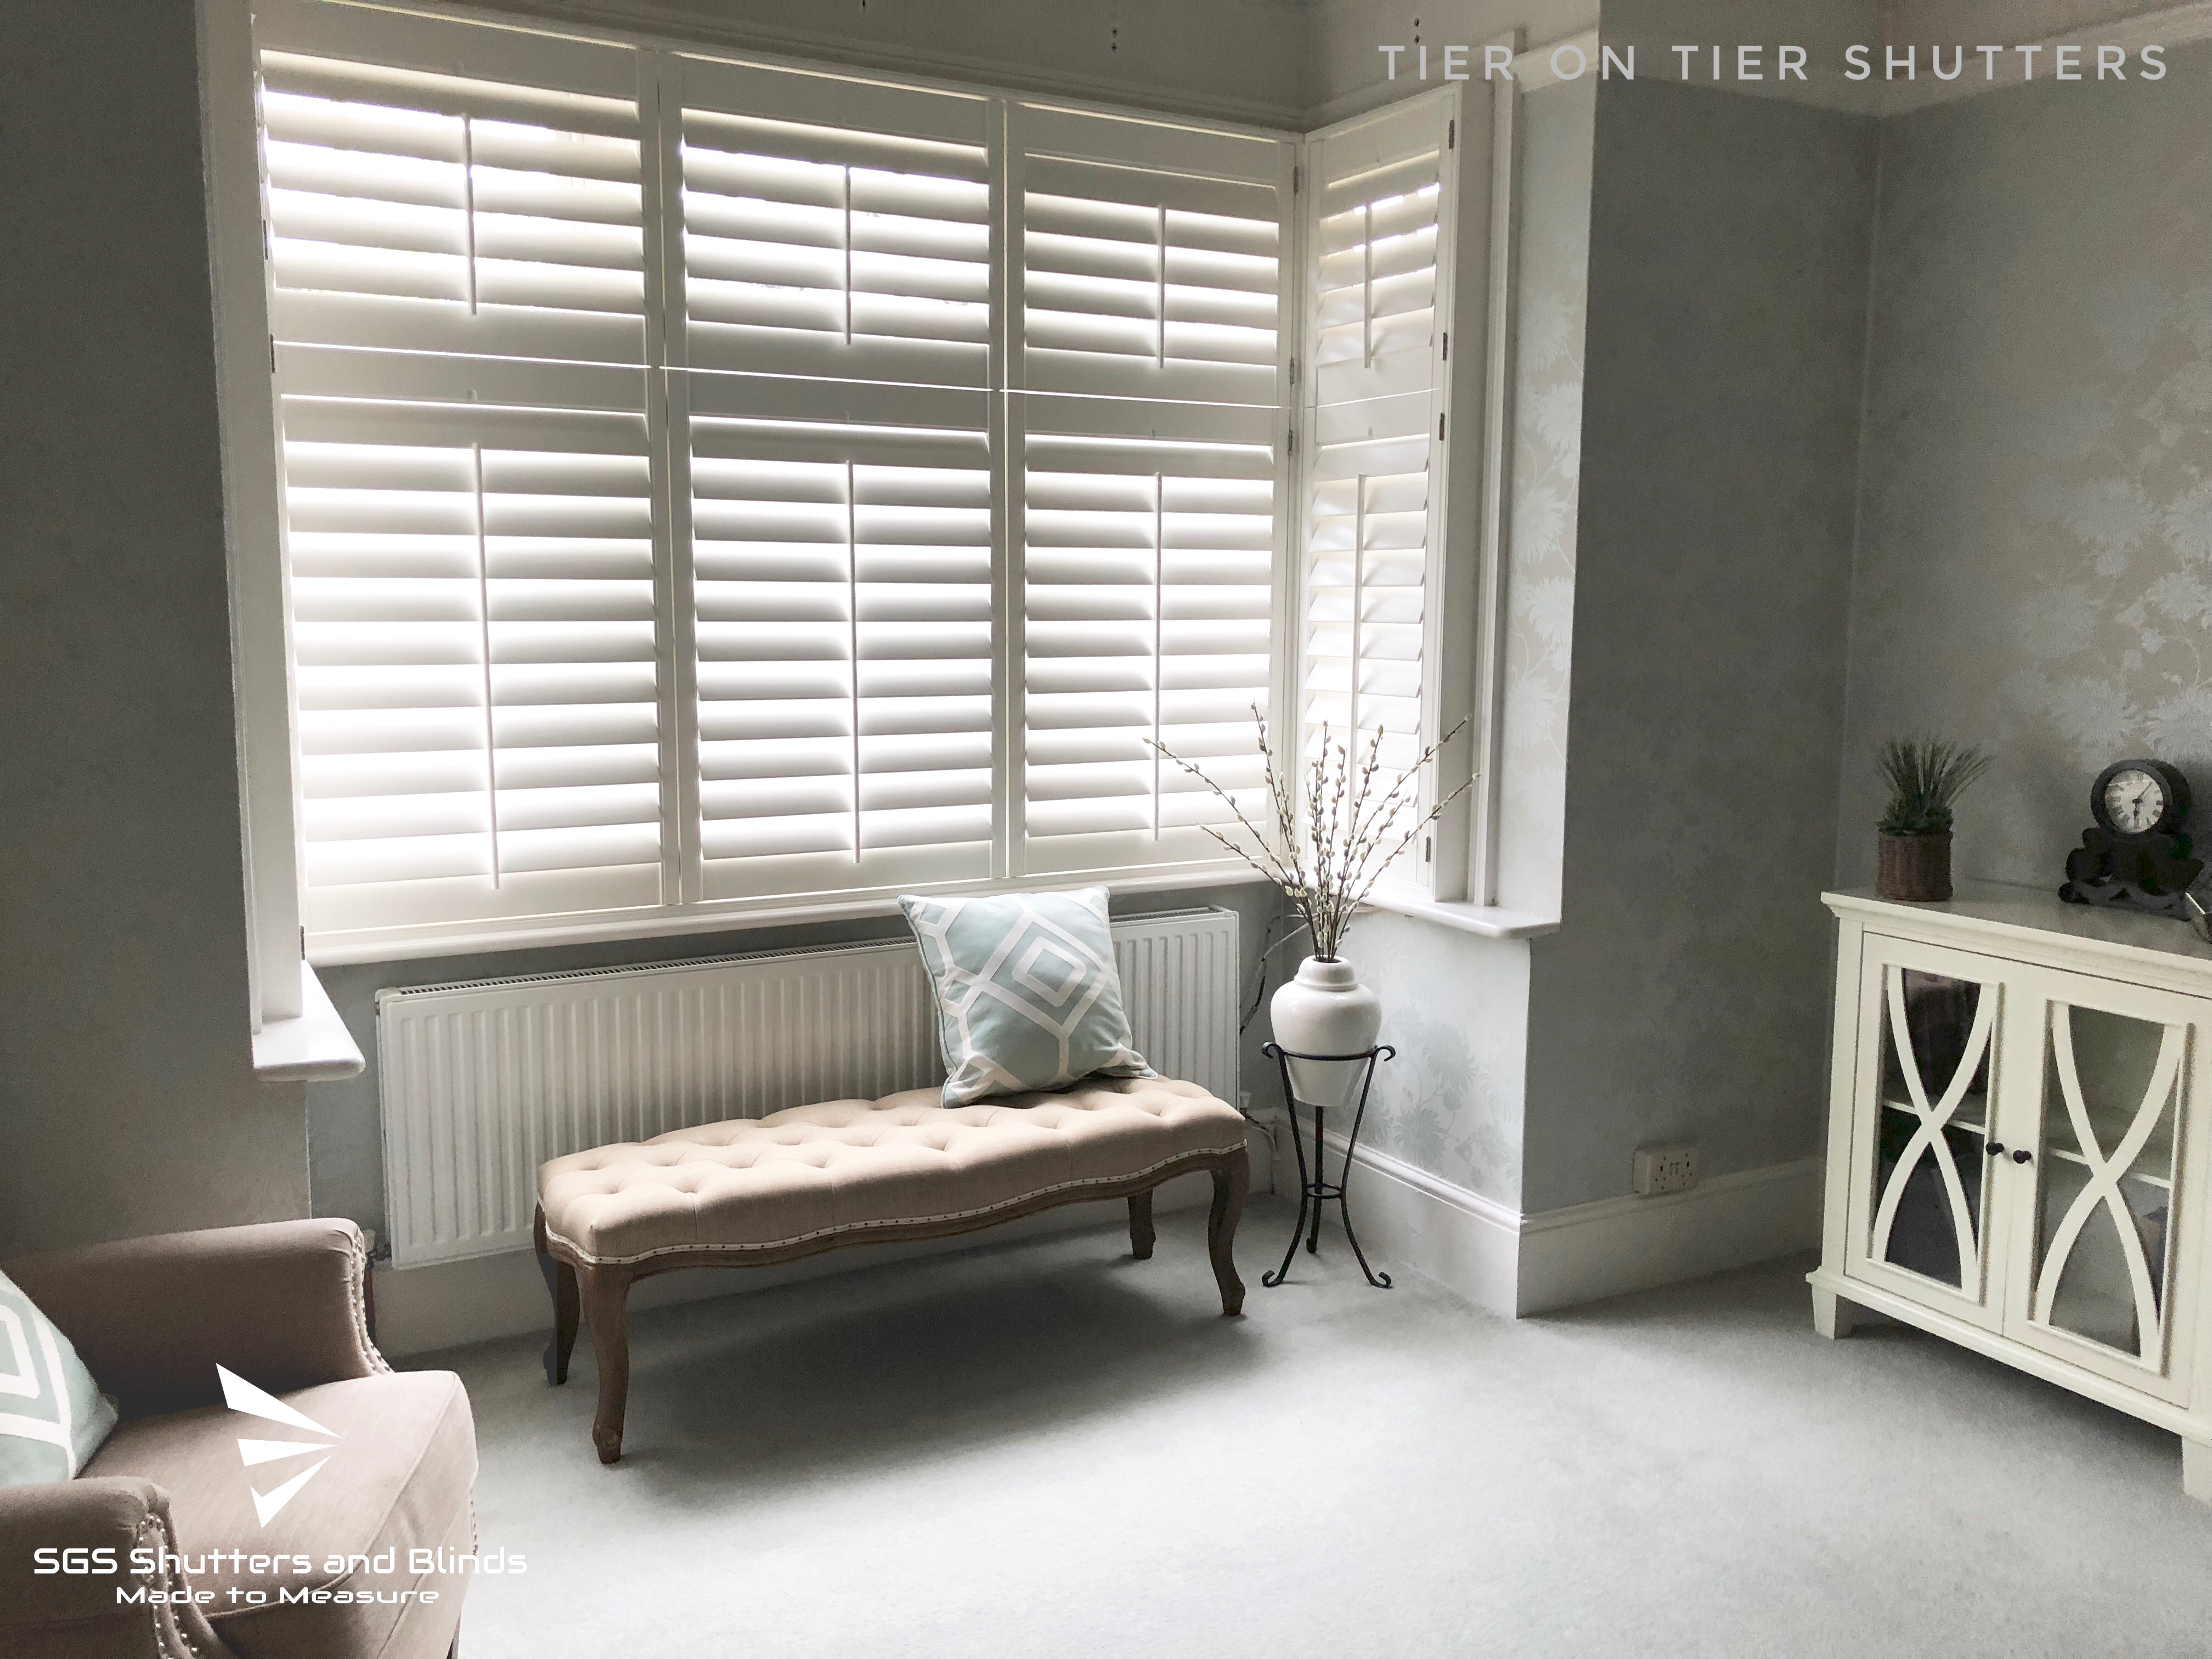 Bay Window Tier On Tier Shutters Sgs Shutters And Blinds Project